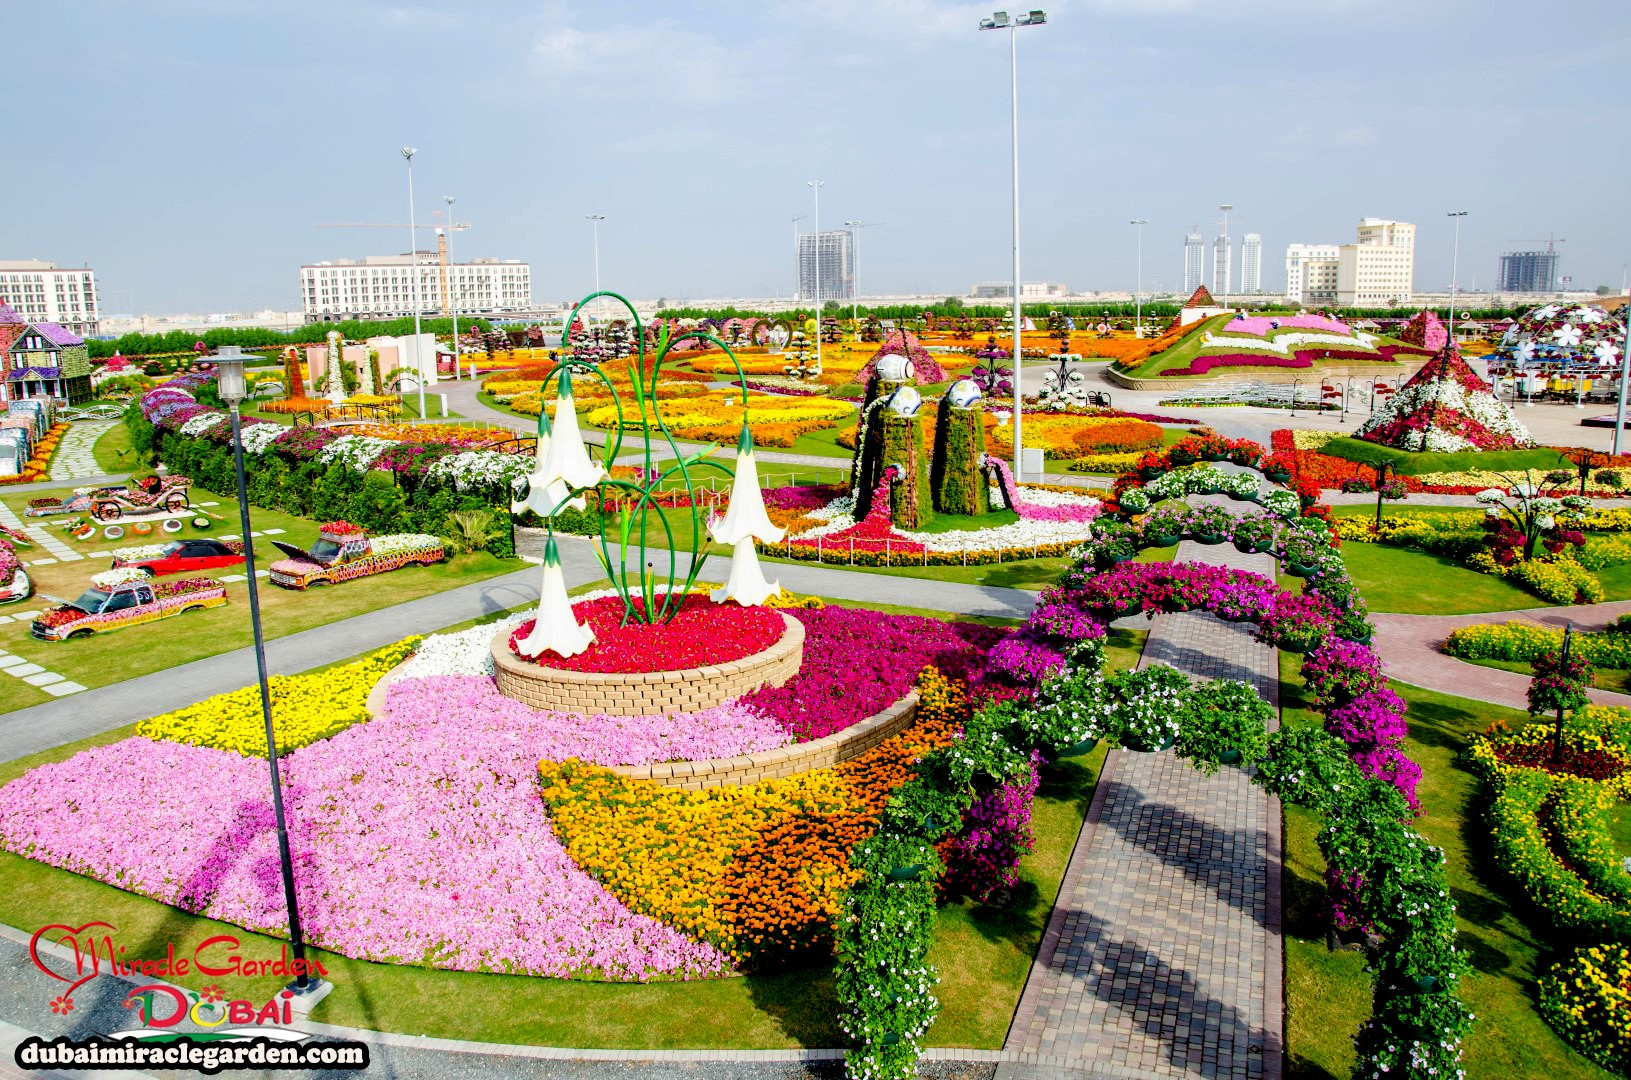 Dubai Miracle Garden: The World's Biggest Natural Flower